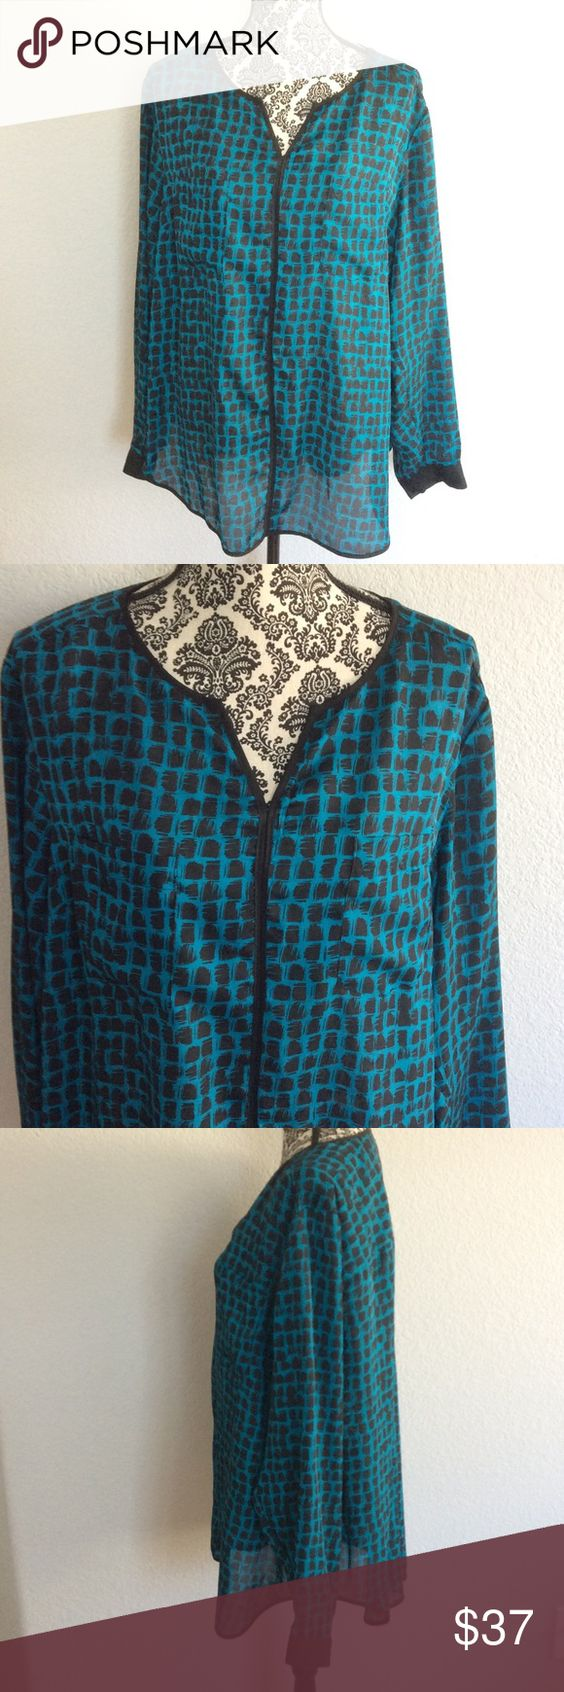 Liz Claiborne long sleeve top Long sleeve pullover top. New without tags. No rips or stains. Size 2x 100% polyester. Chest laying flat is 27inches. Rounded bottom. Two pockets on the front chest.  Cuff at the end of the arms. Color is turquoise and black. Liz Claiborne Tops Tees - Long Sleeve